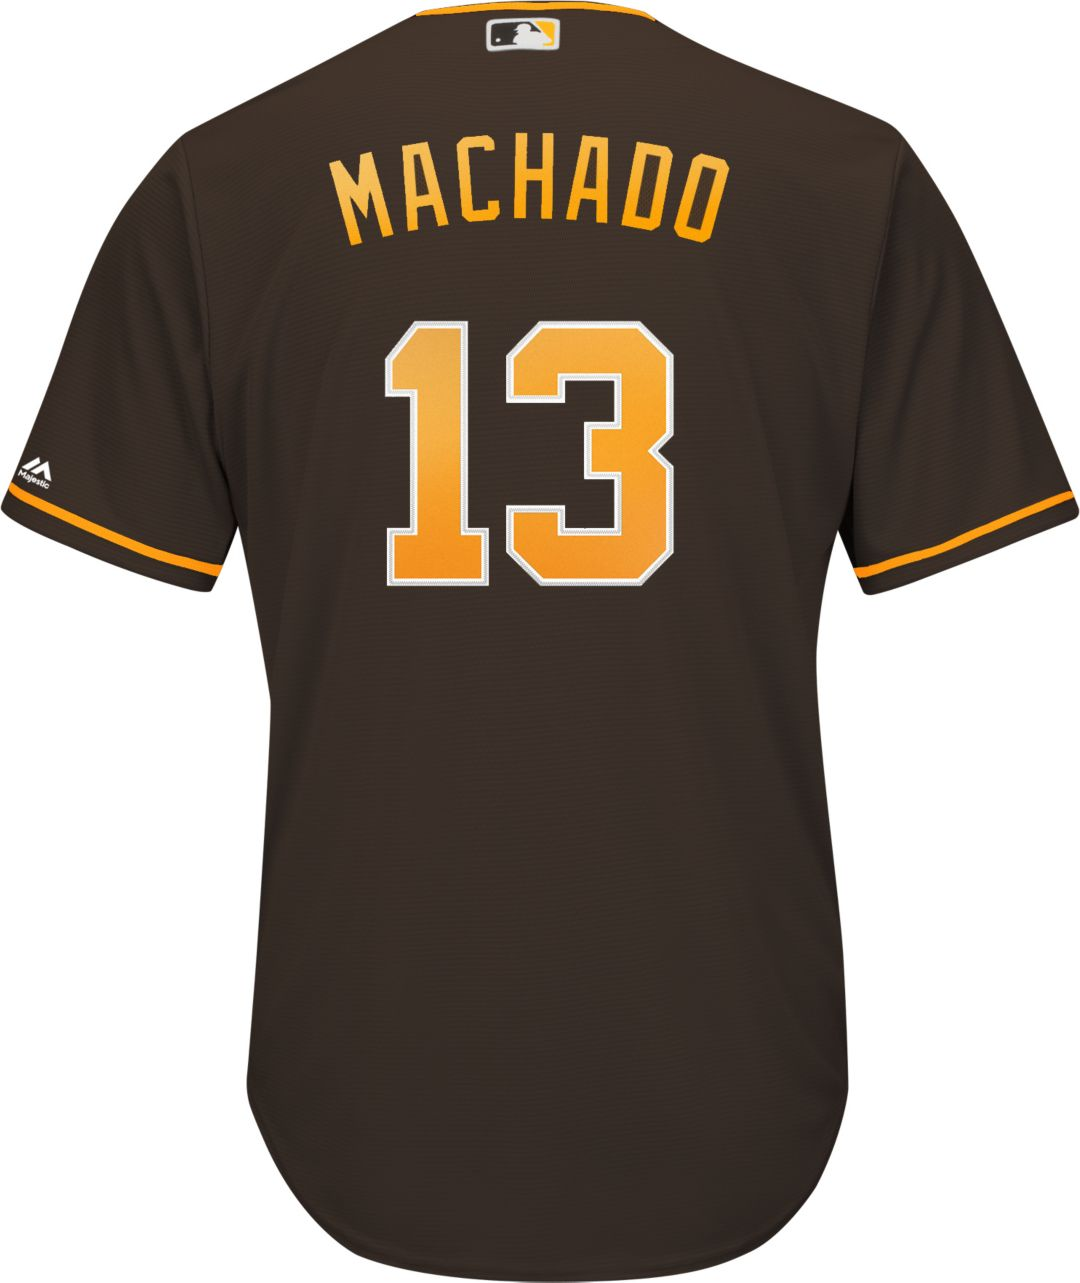 size 40 c3223 a685a Majestic Youth Replica San Diego Padres Manny Machado #13 Cool Base  Alternate Brown Jersey